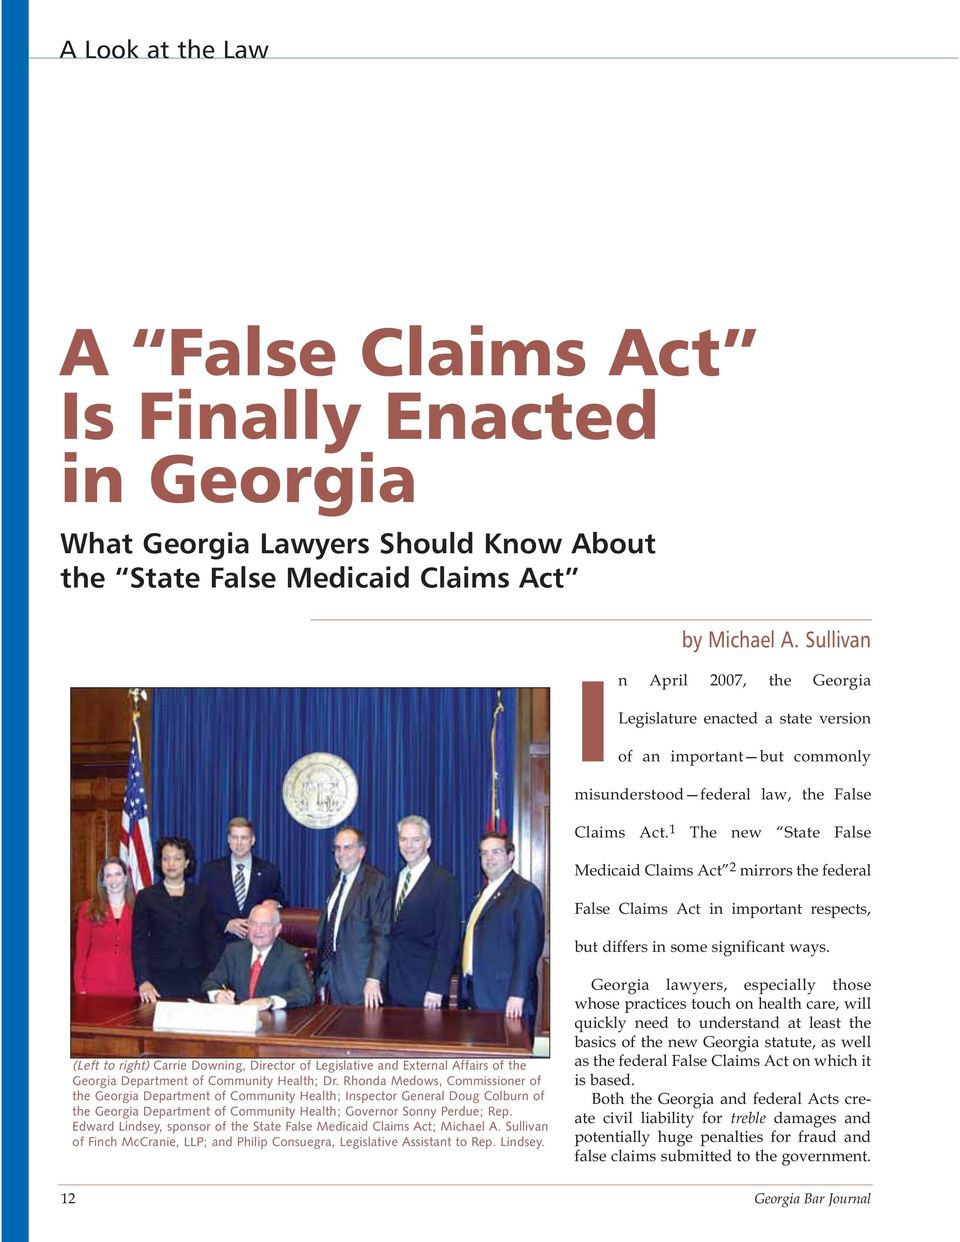 1 The new State False Medicaid Claims Act 2 mirrors the federal False Claims Act in important respects, but differs in some significant ways.